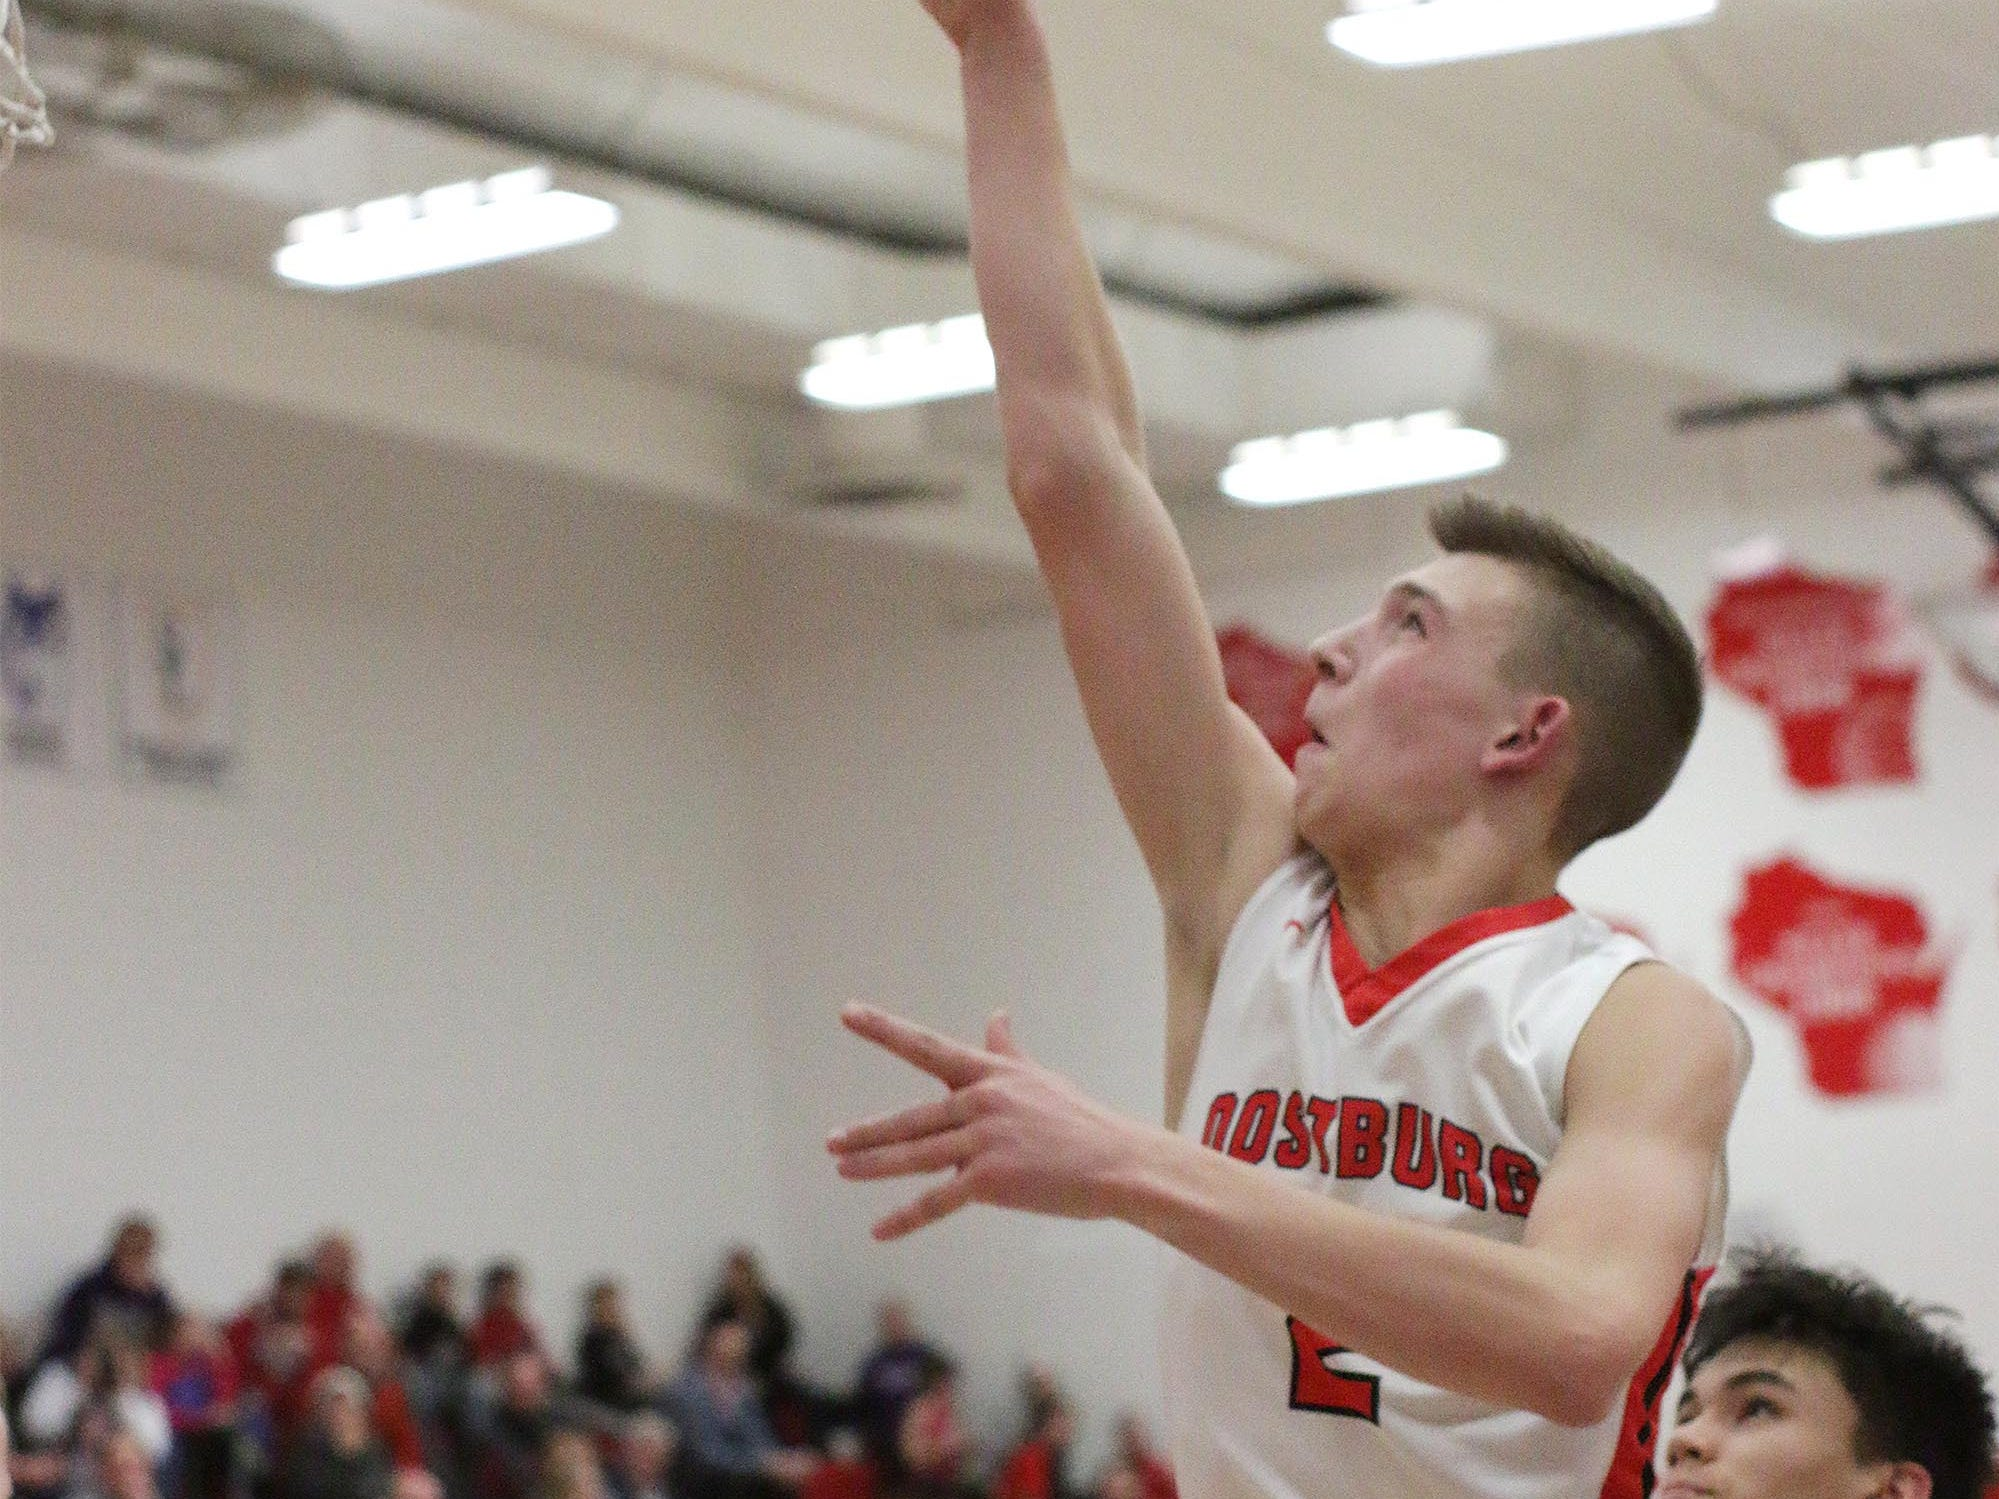 Oostburg's Cam Jaeger (2) aims a shot against Manitowoc Lutheran, Friday, February 8, 2109, in Oostburg, Wis. Gary C. Klein/USA TODAY NETWORK-Wisconsin